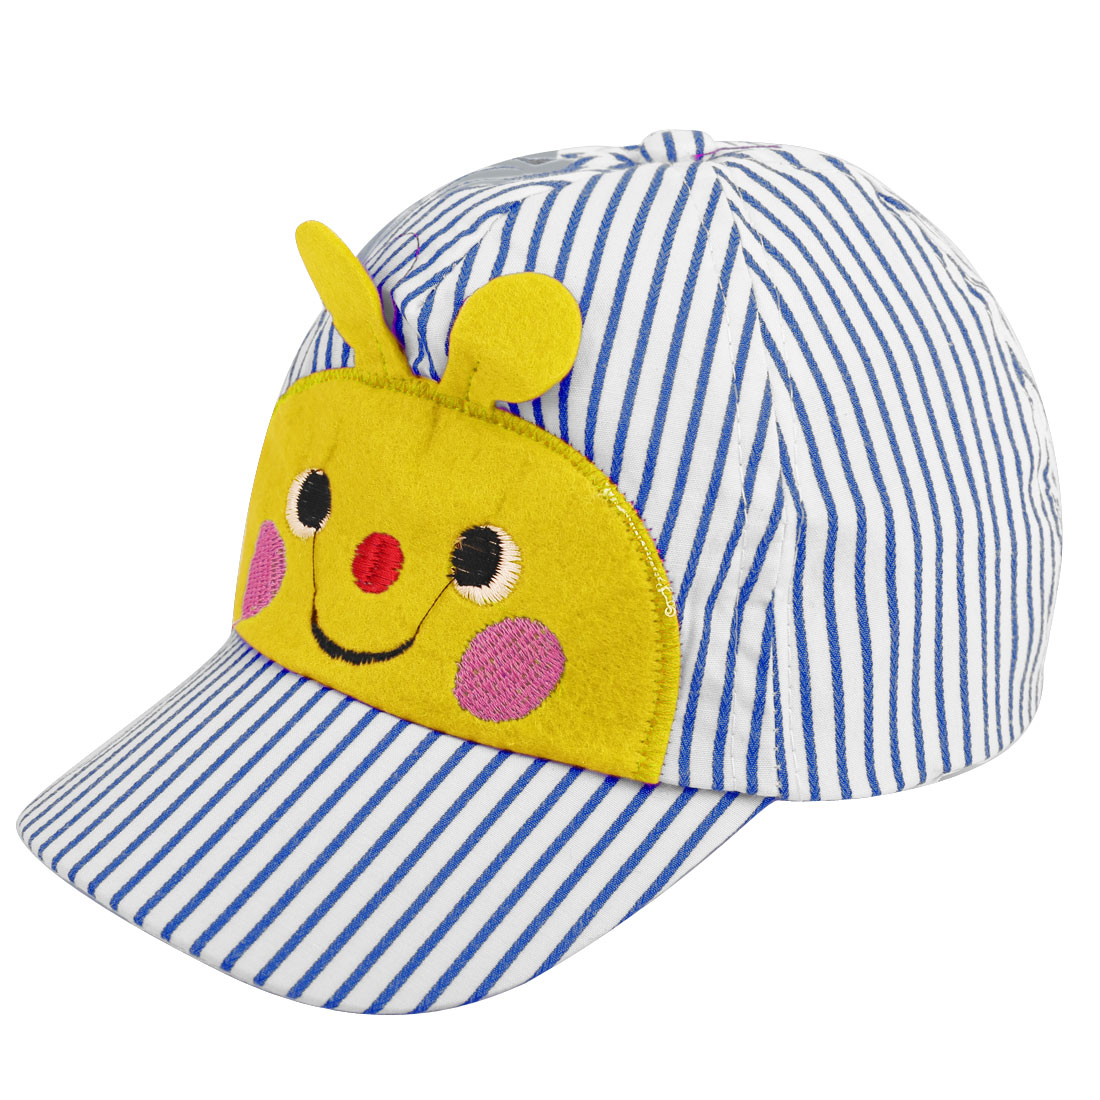 NEWS Smiling Bee Low Crown Baseball Cap for Children Blue White